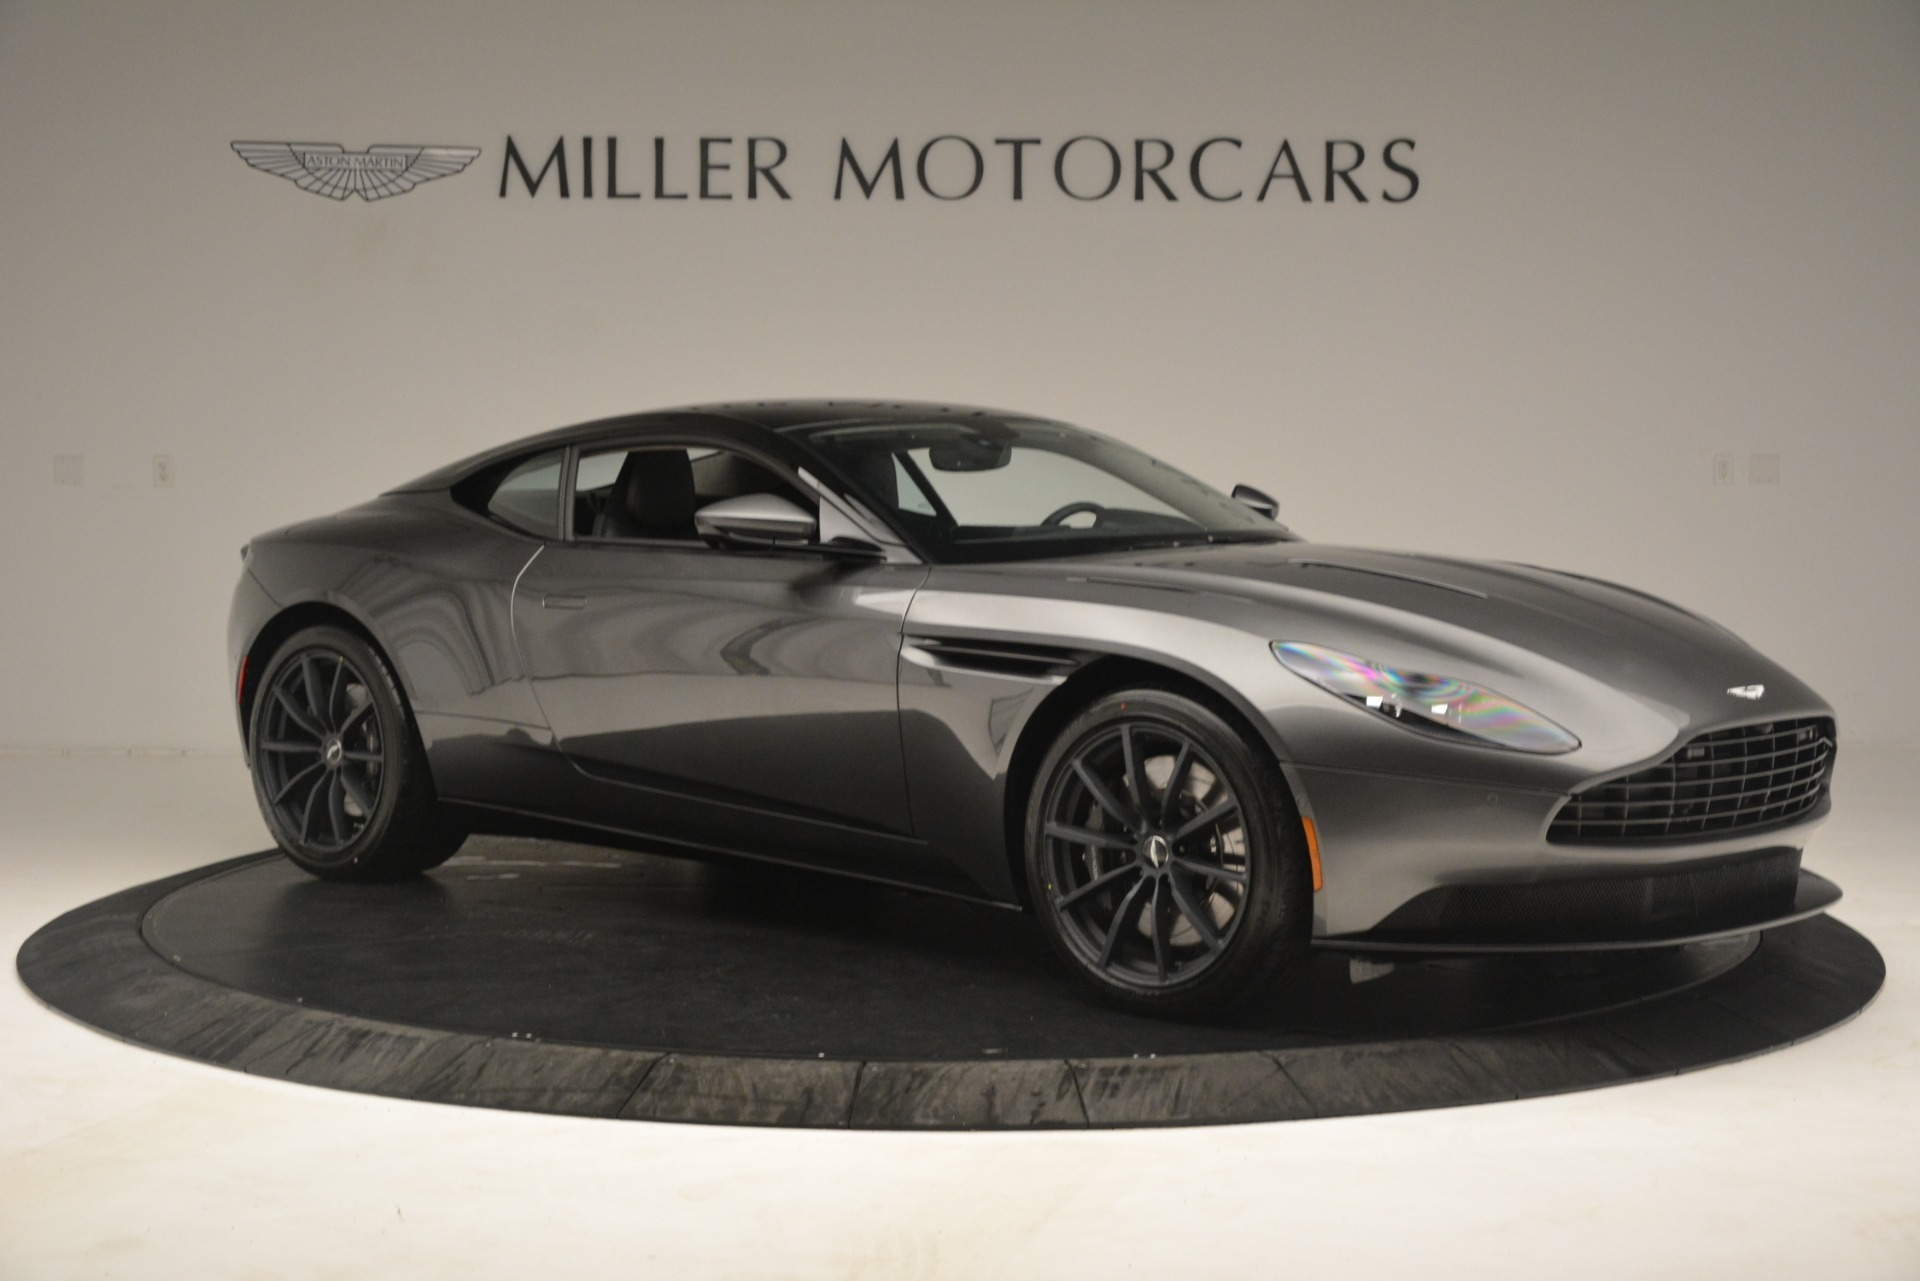 New 2019 Aston Martin DB11 V12 AMR Coupe For Sale In Westport, CT 3123_p10